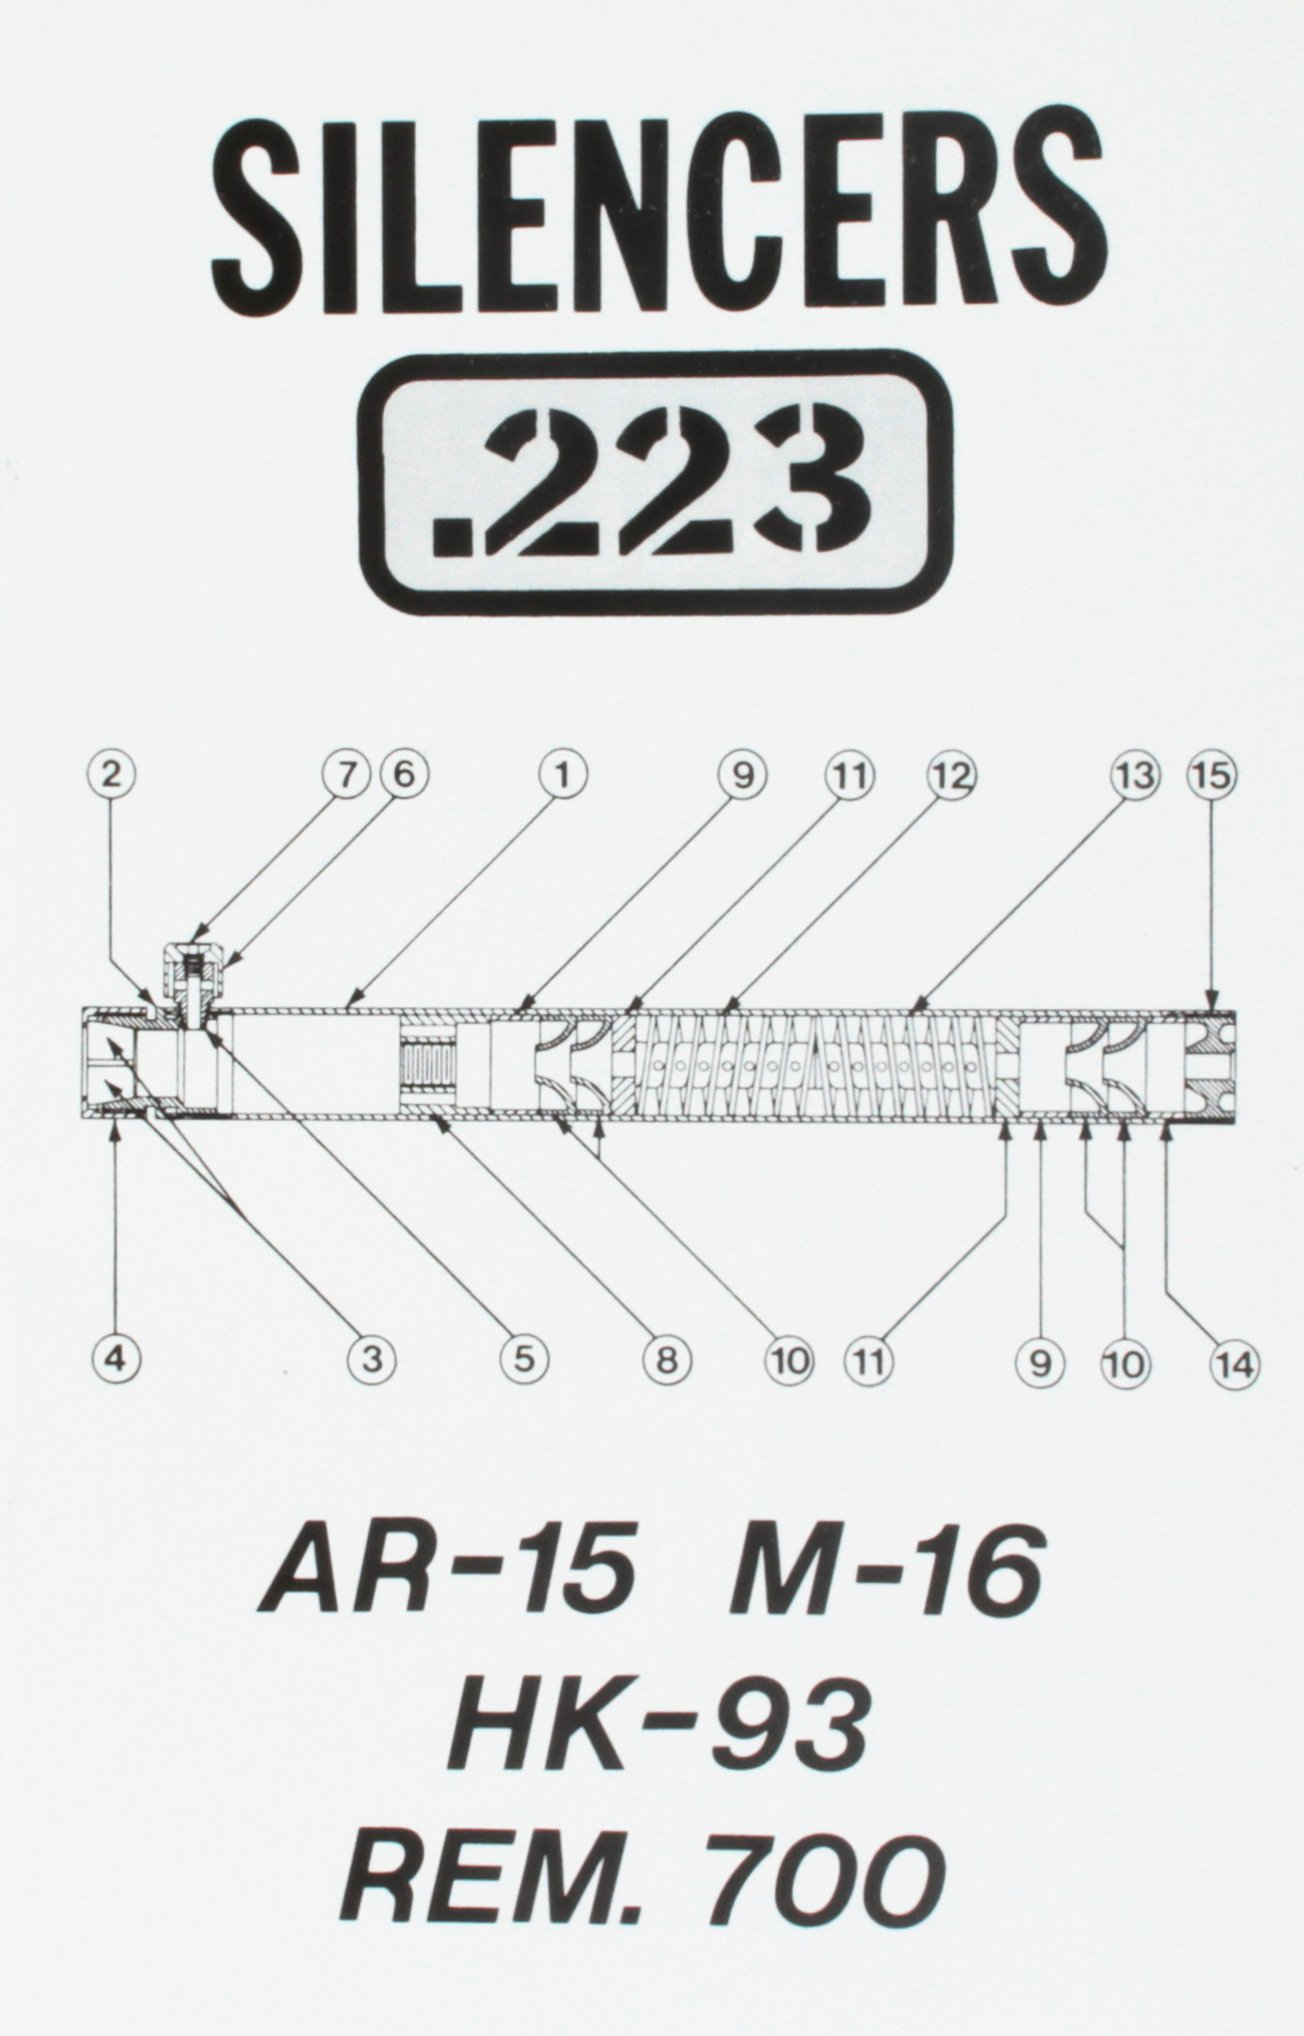 Astounding Silencers 223 Ar 15 M 16 Hk93 Remington 700 Desert Pub Wiring Digital Resources Otenewoestevosnl